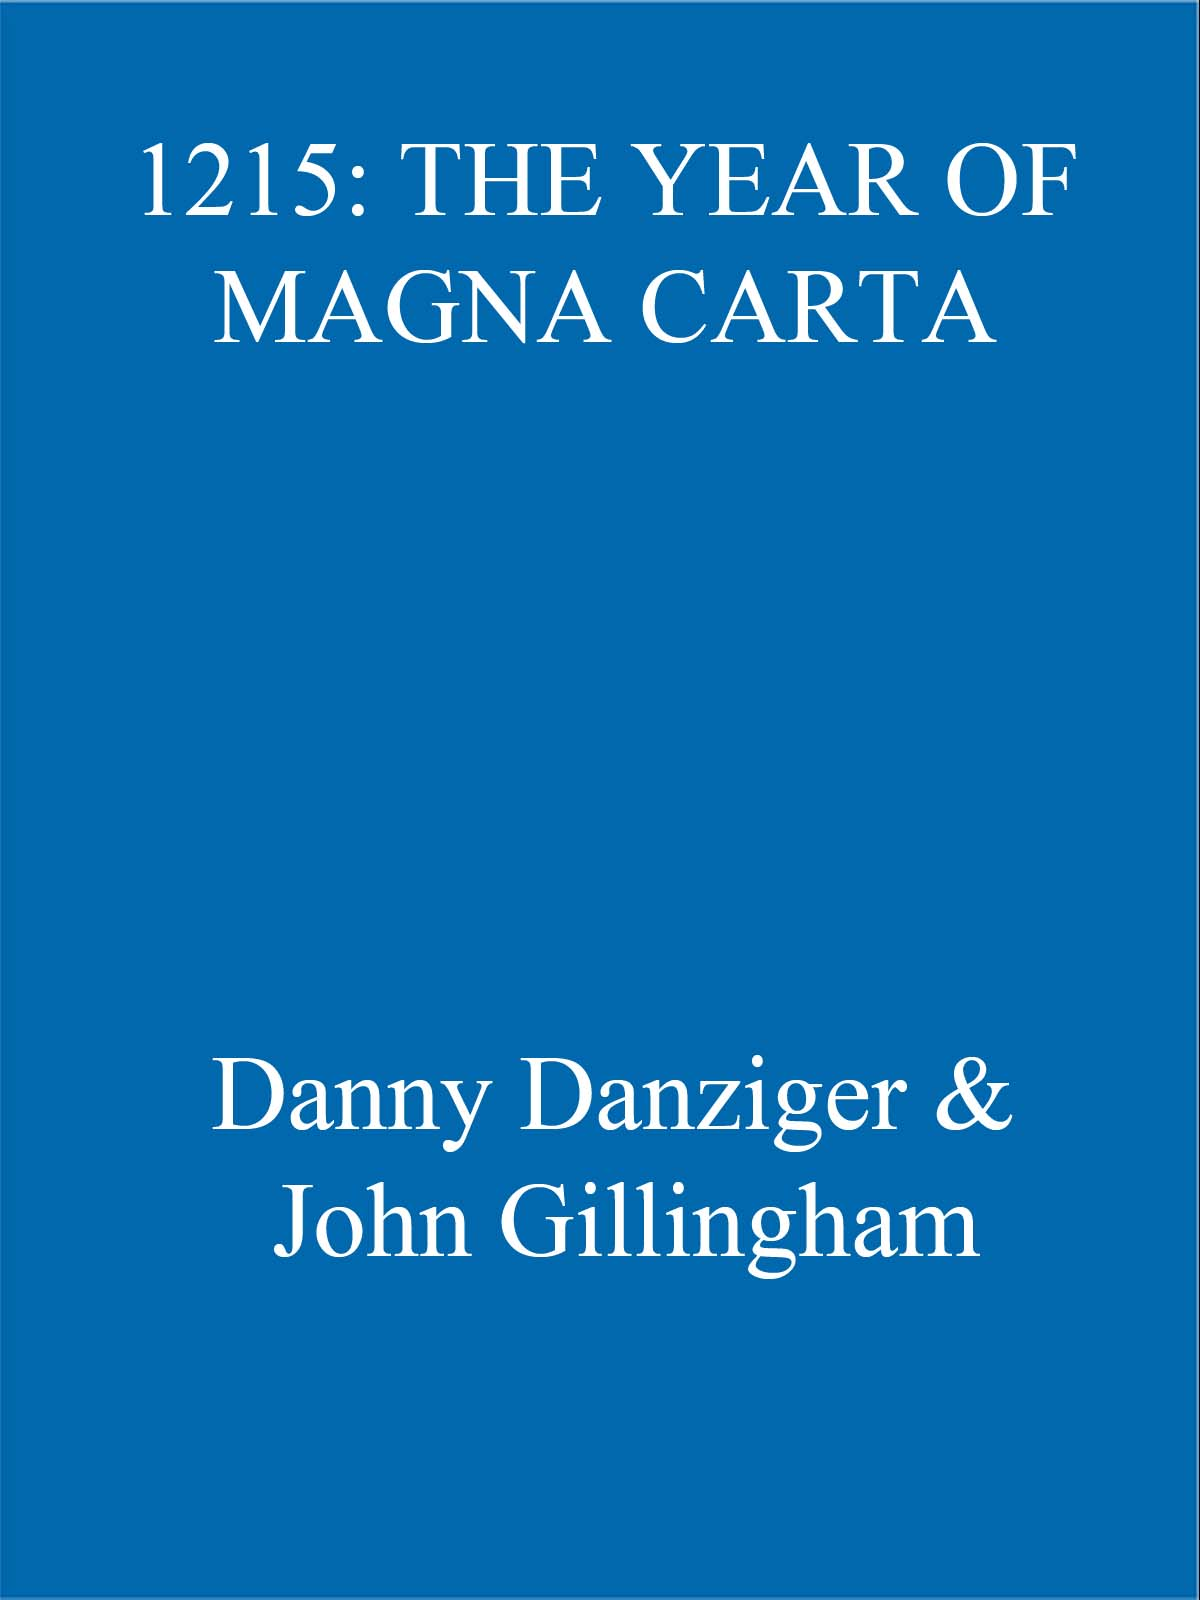 1215: The Year of Magna Carta Ebook (2004)